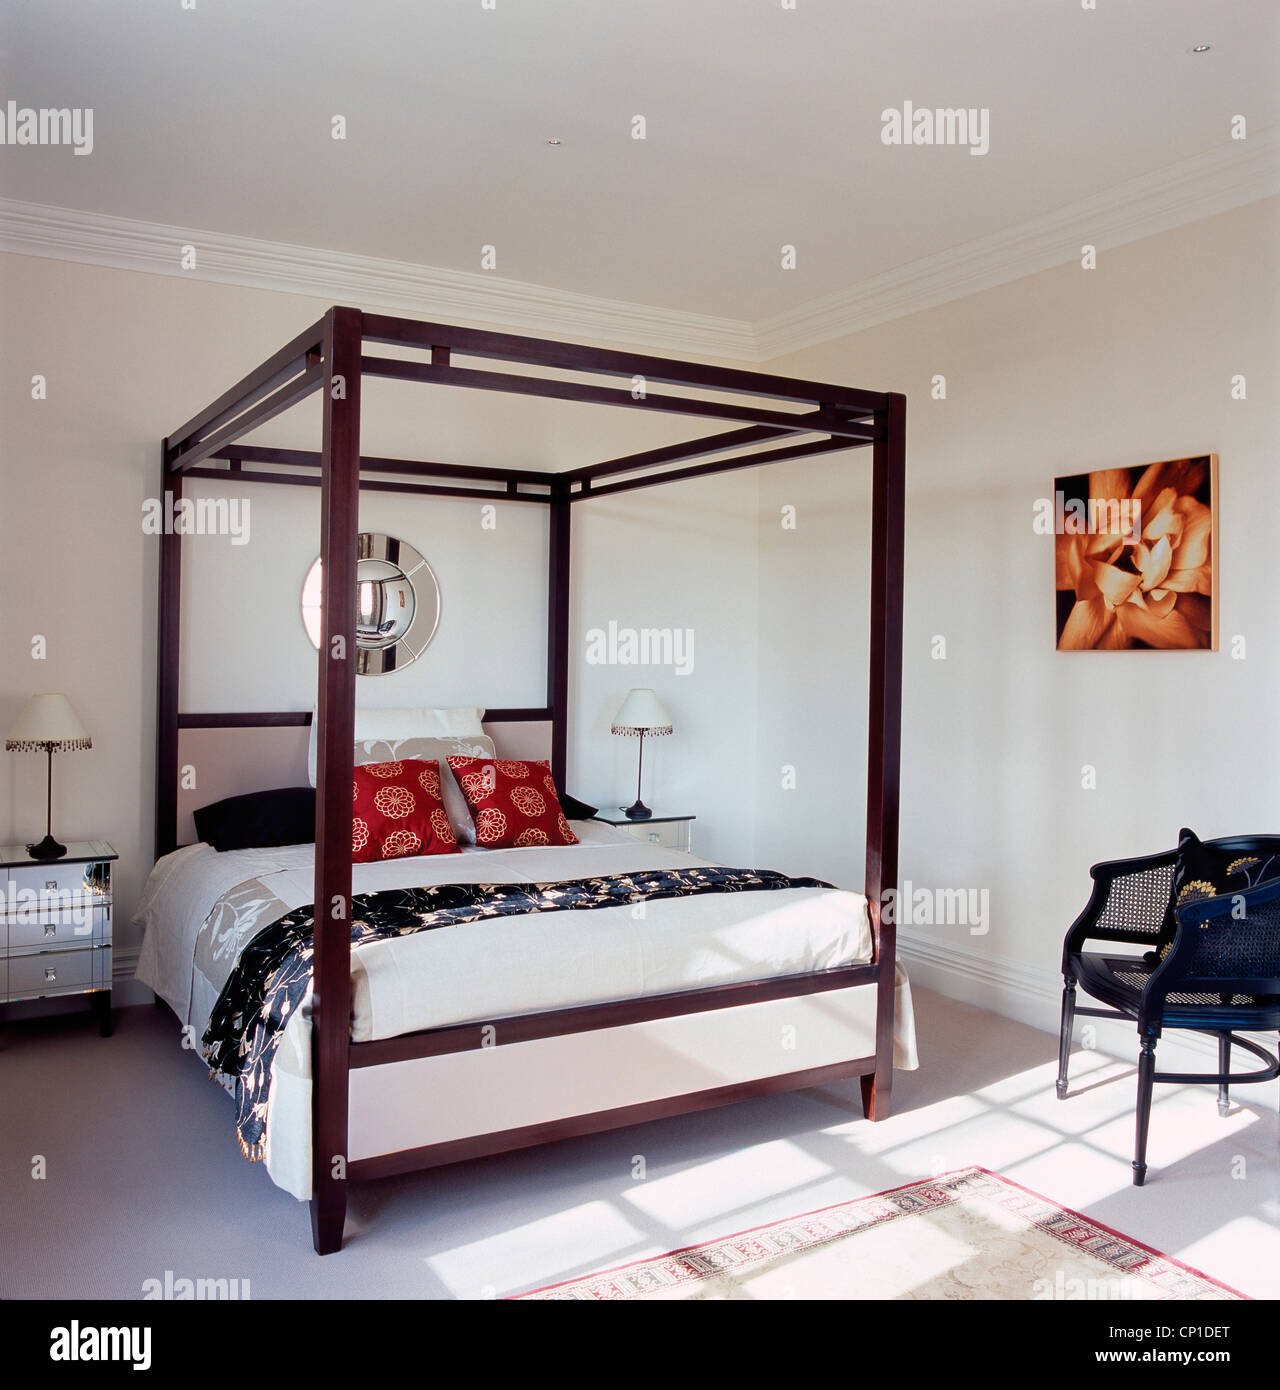 A modern white bedroom with four poster bed, silver chest of drawers, black wicker chair - Stock Image